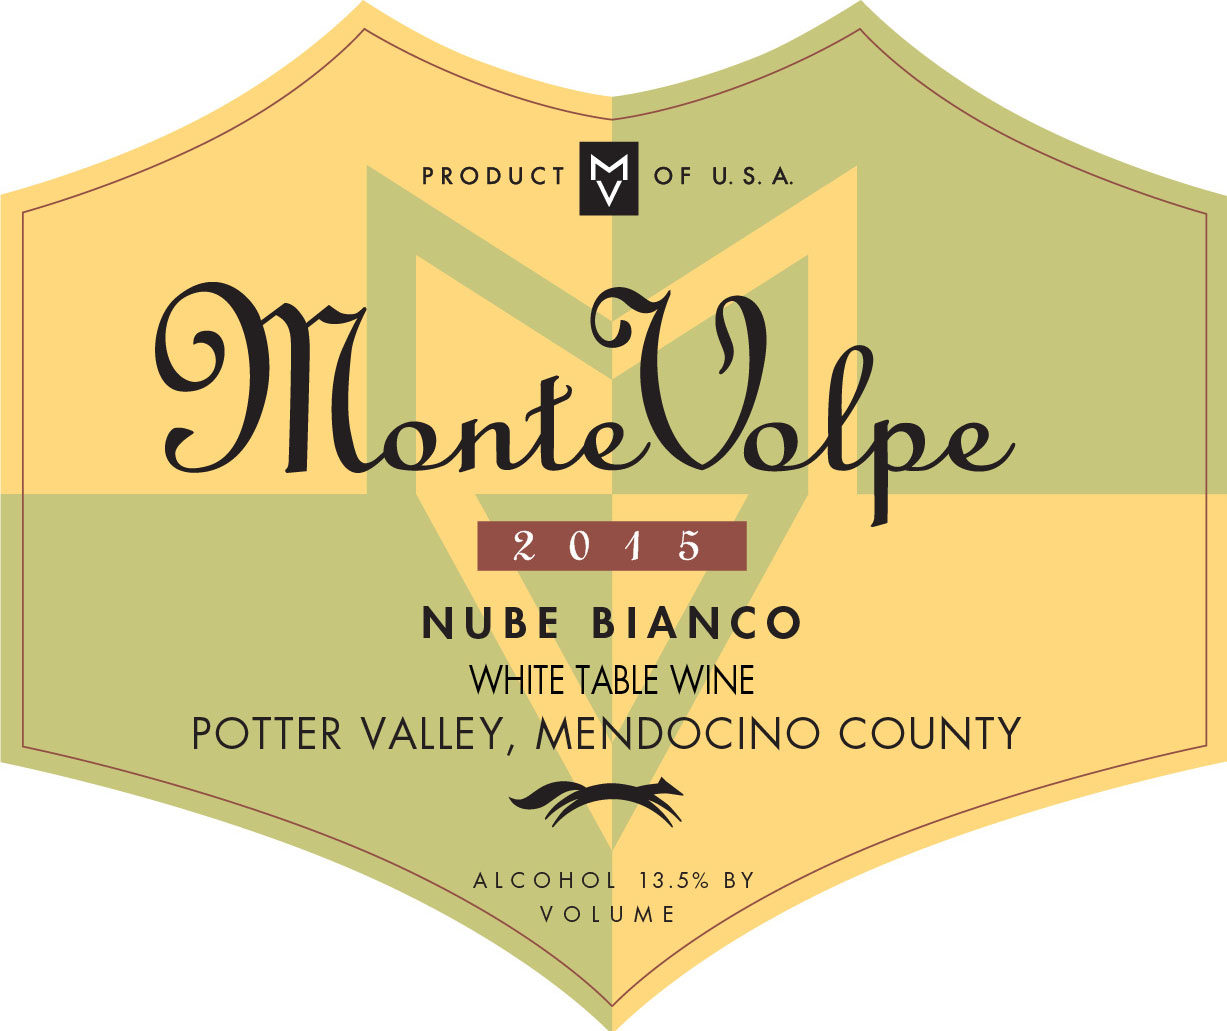 2015 Monte Volpe Nube Bianco THUMBNAIL